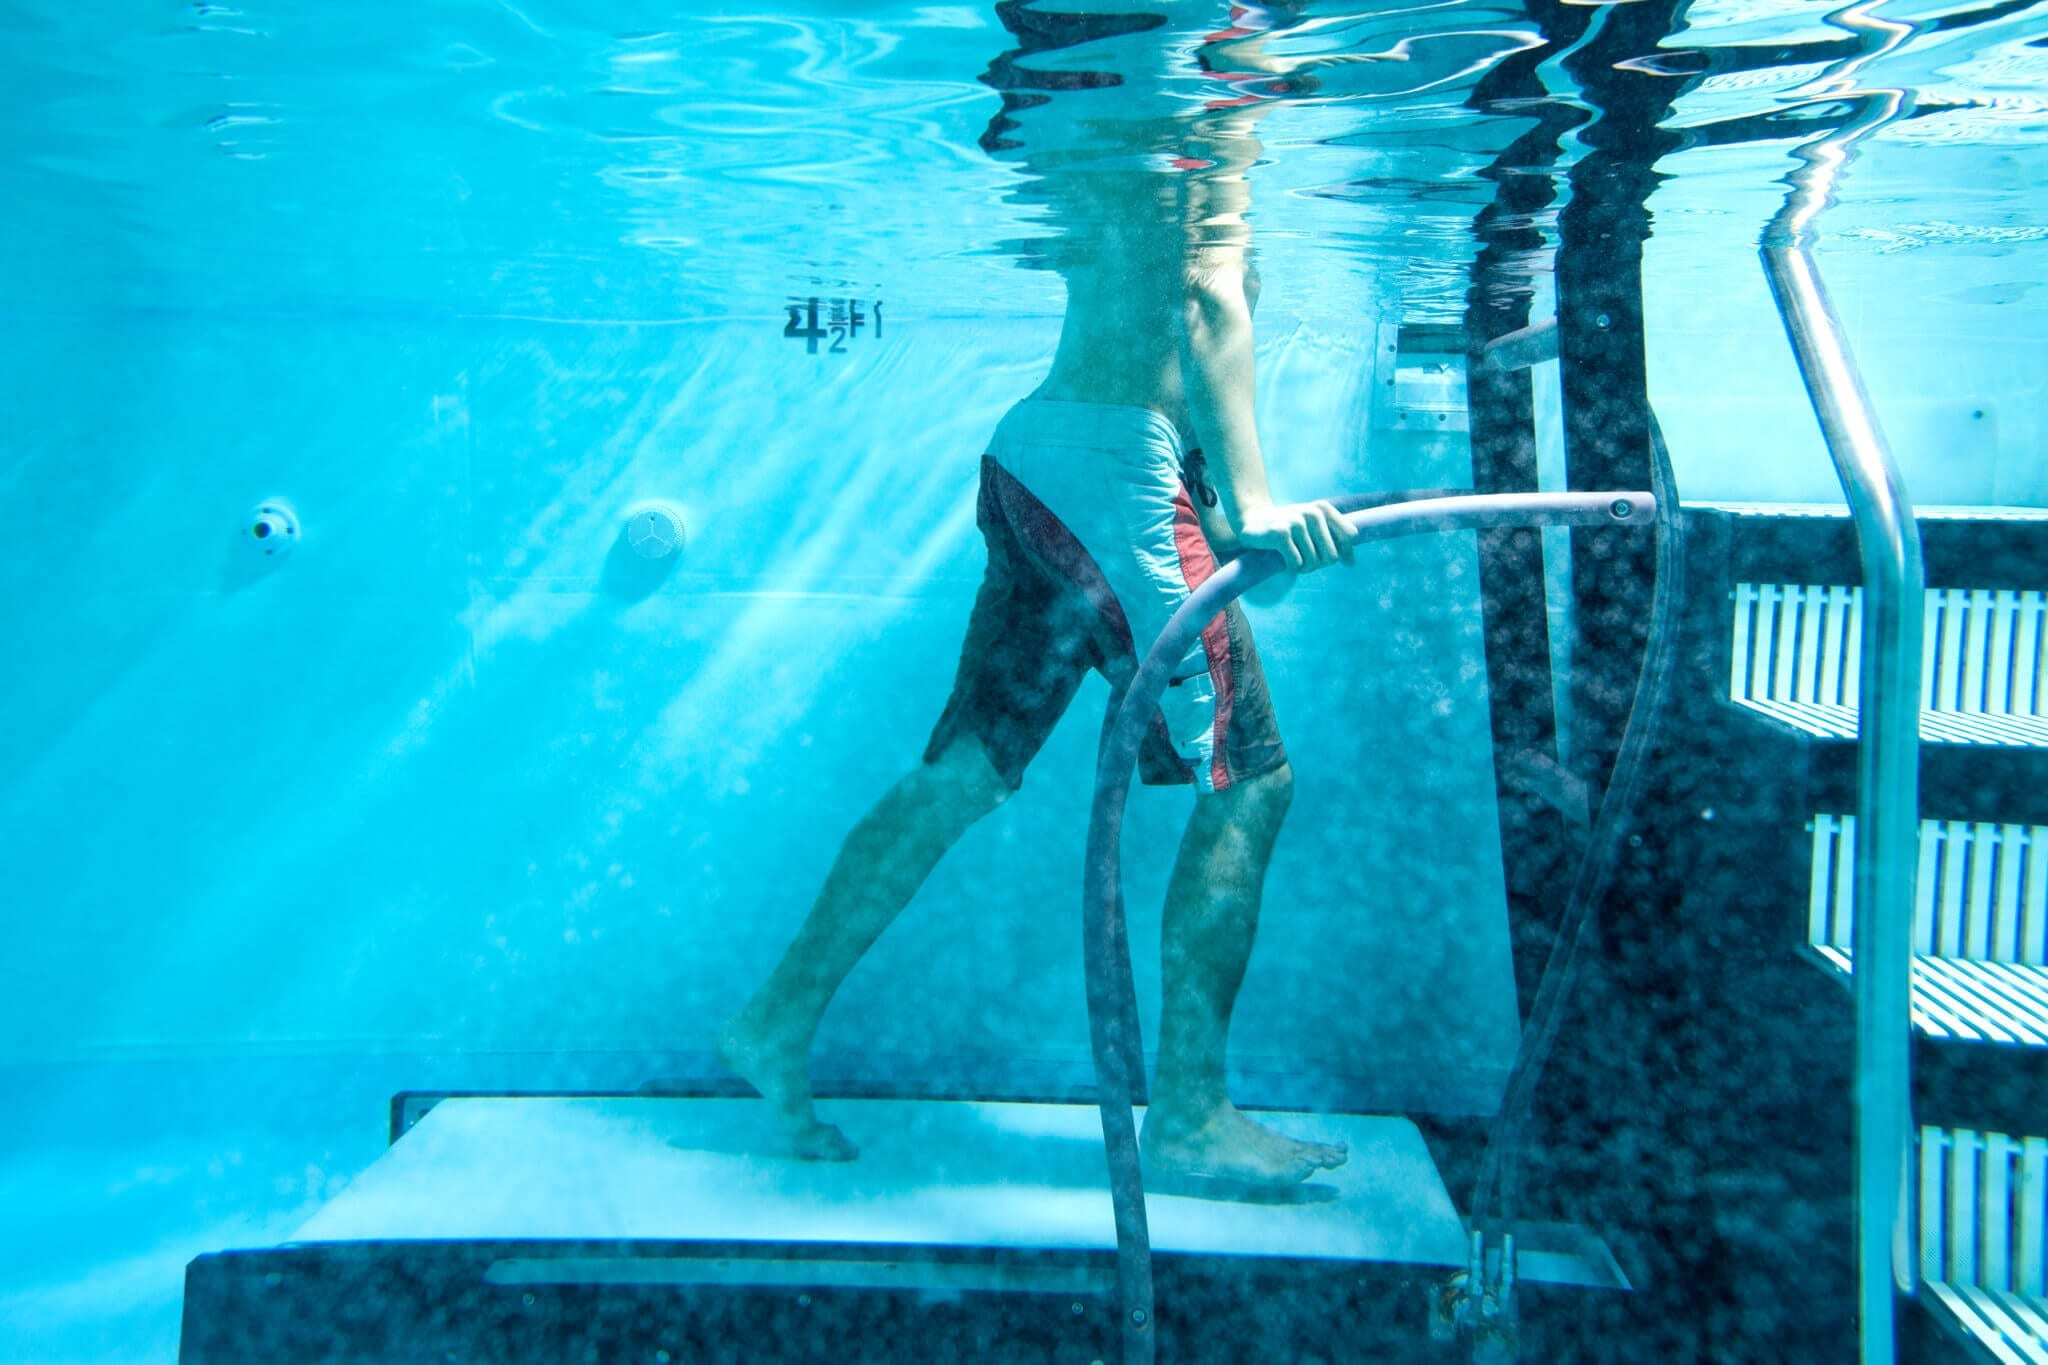 Swim current pools: The treadmill for swimming